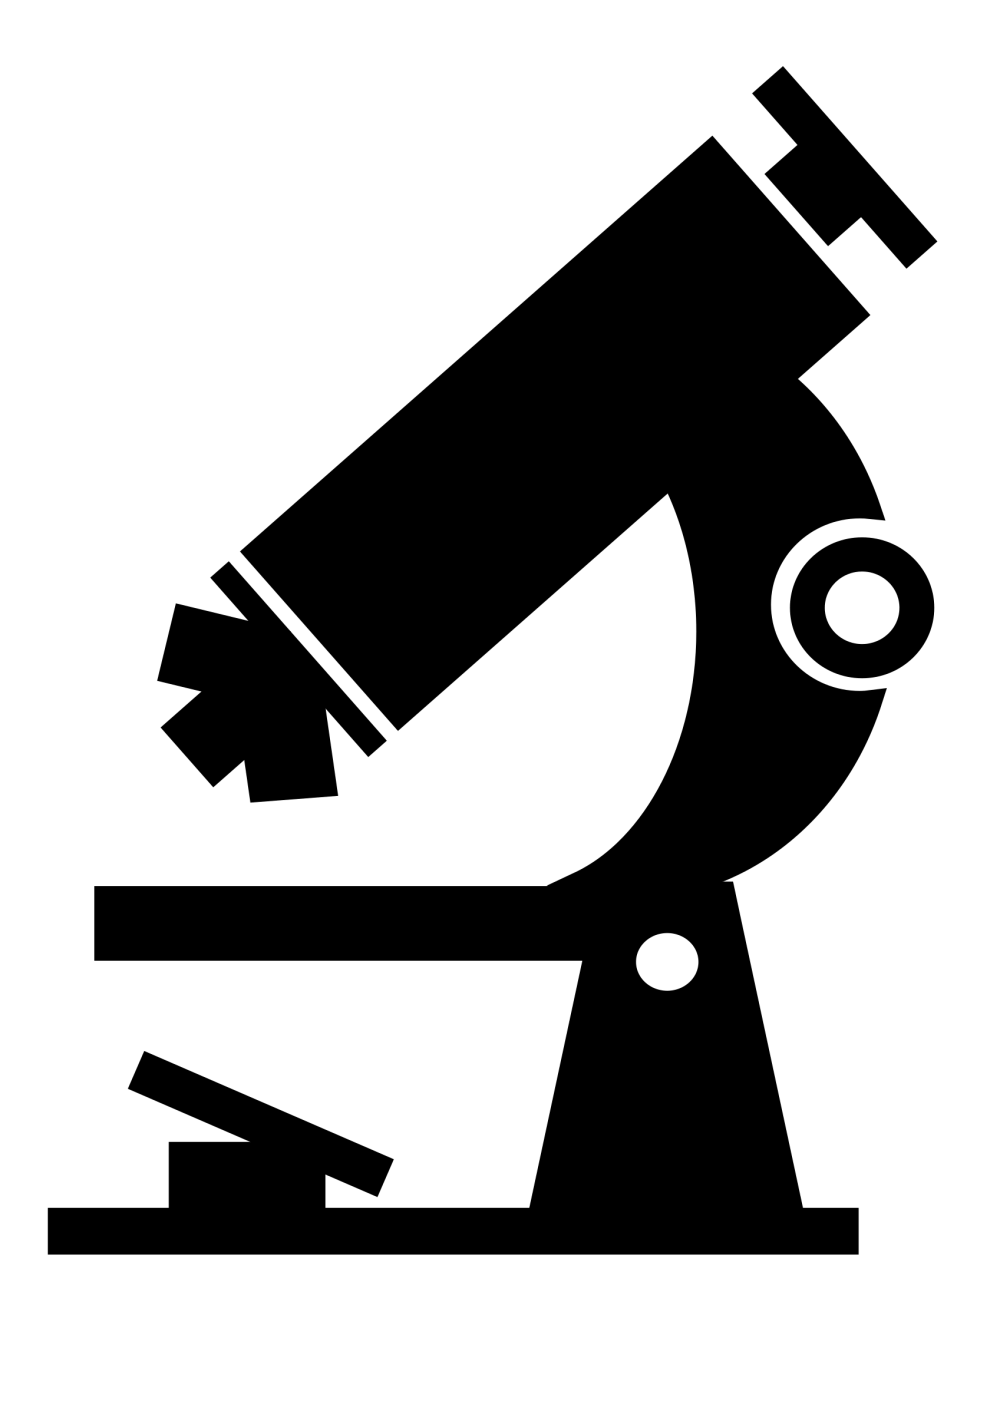 medium resolution of free photos vector images microscope graphic vector clipart